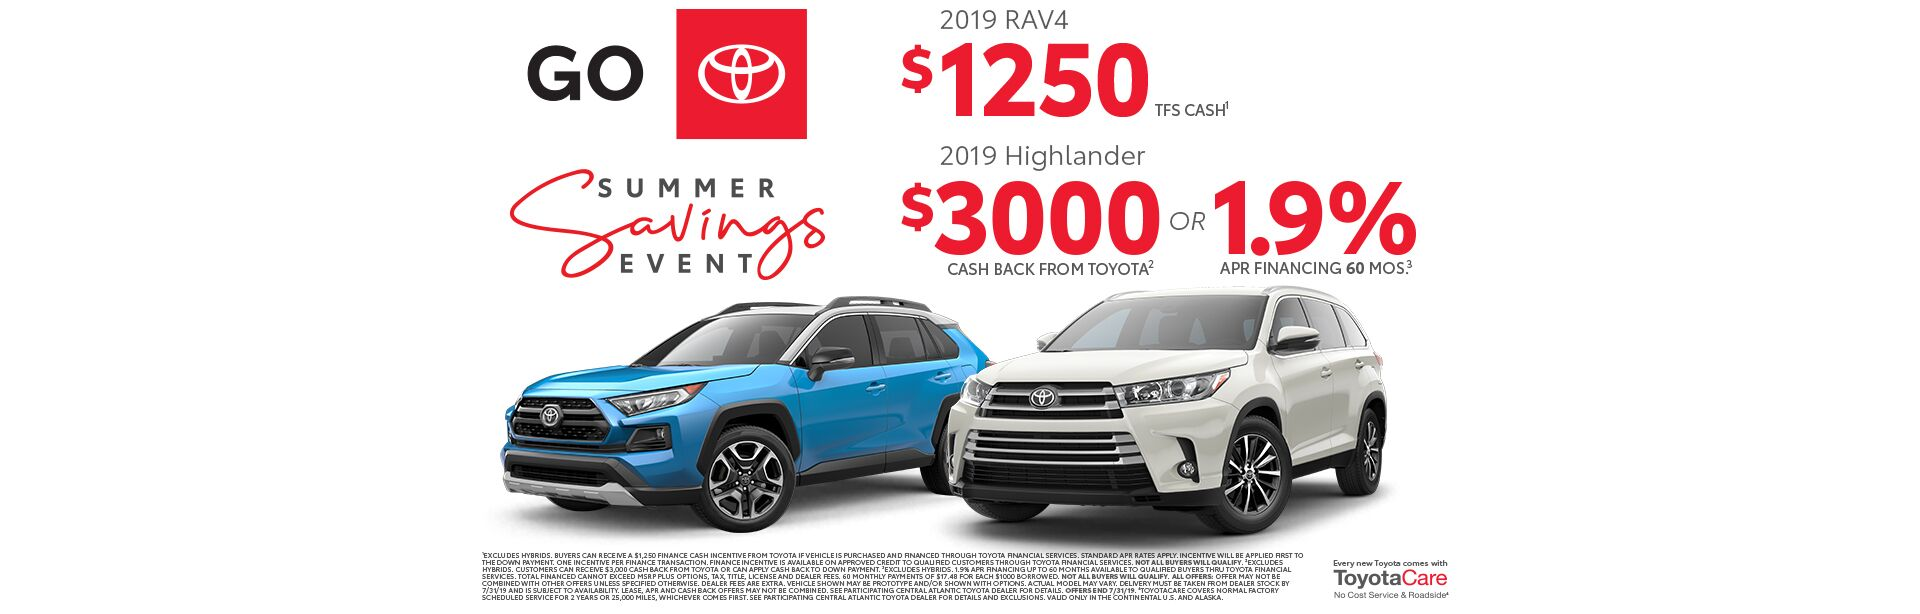 2019 July CAT Summer Savings Event